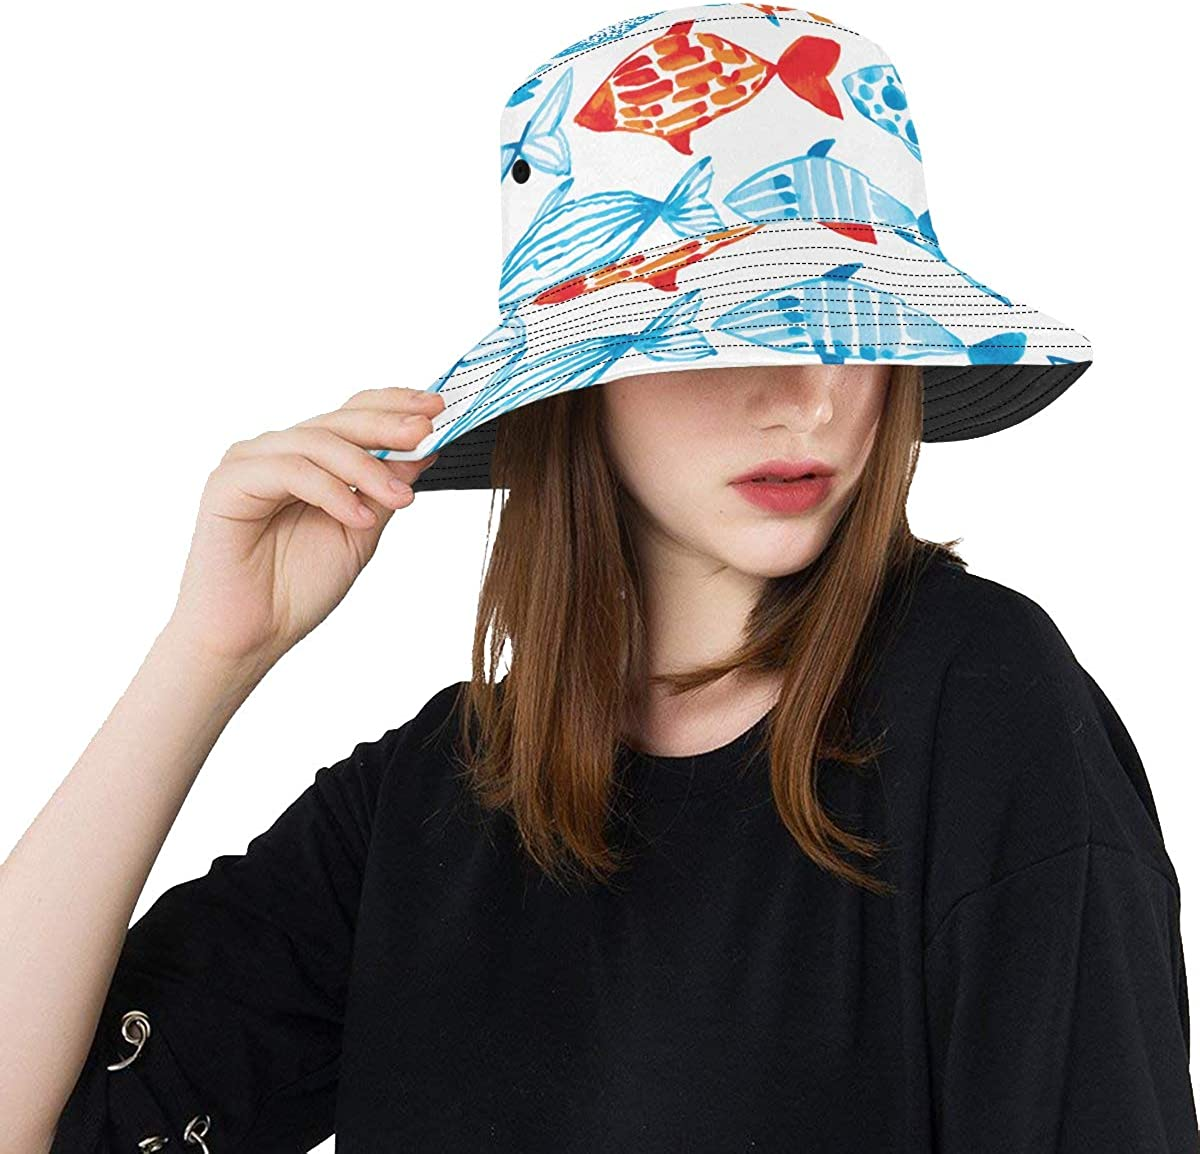 Fish Pattern Colorful Summer Supply Summer Unisex Fishing Sun Top Bucket Hats for Kid Teens Women and Men with Packable Fisherman Cap for Outdoor Baseball Sport Picnic